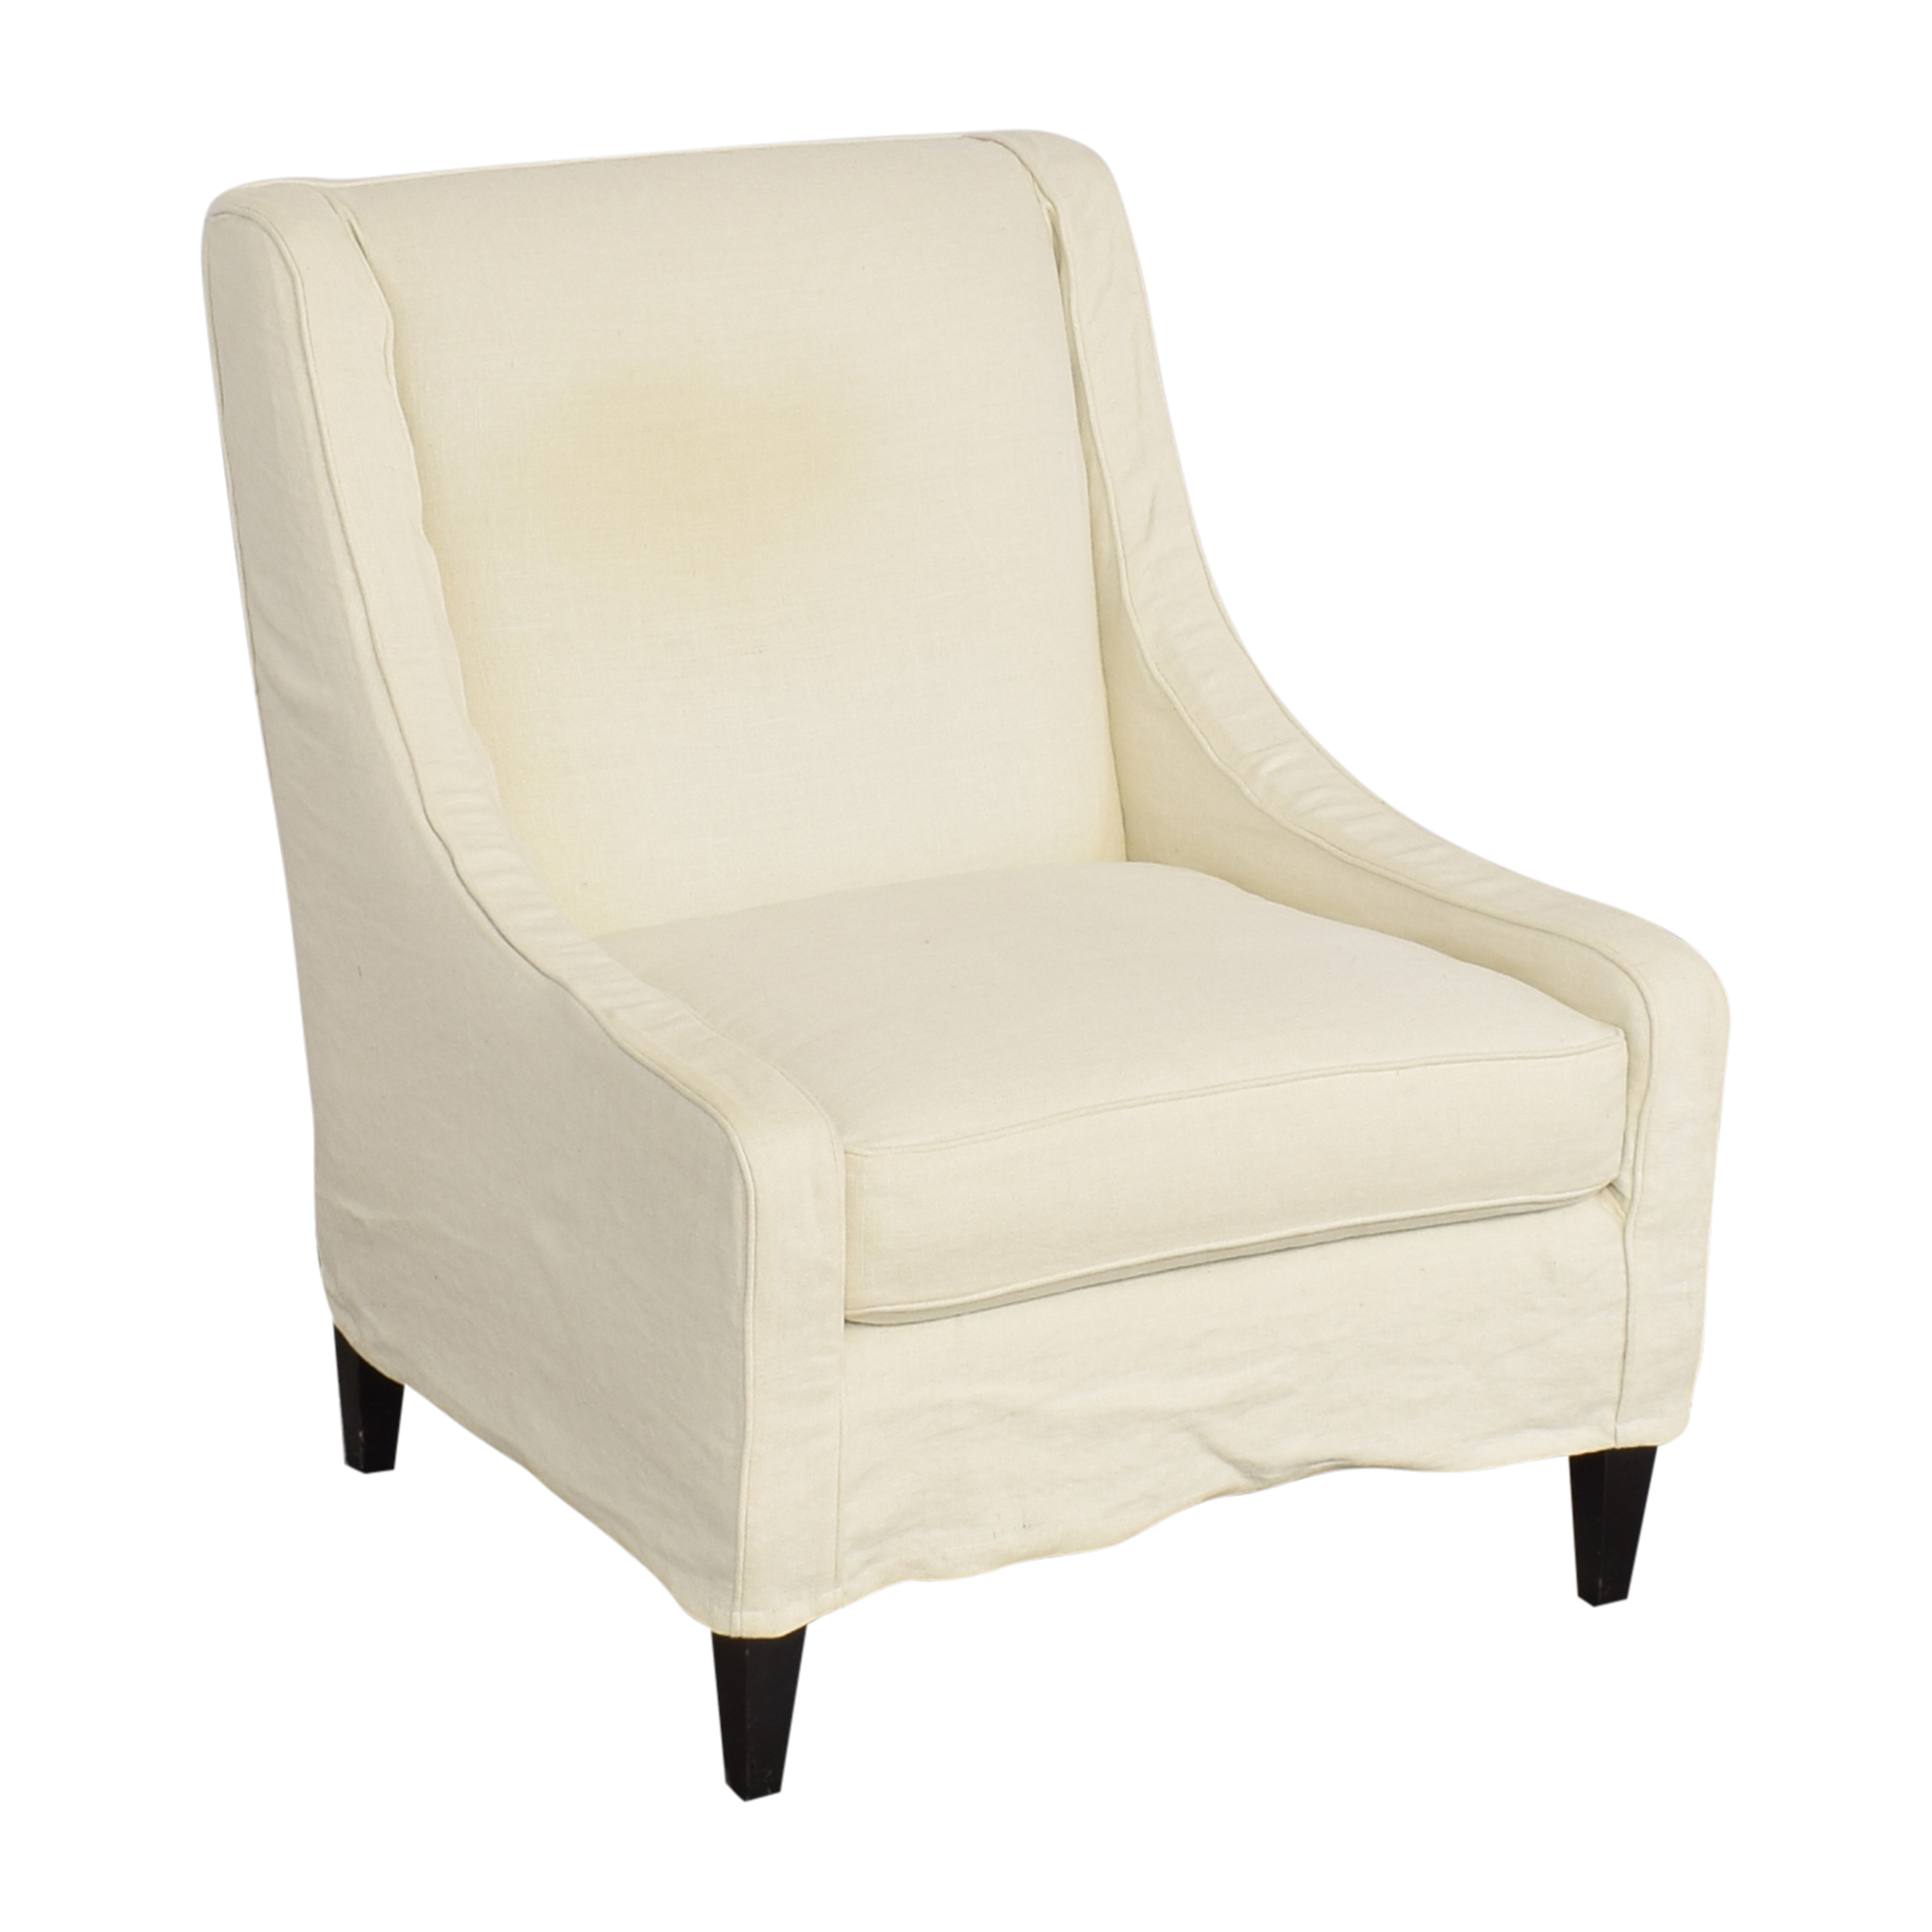 Crate & Barrel Slipcovered Accent Chair Crate & Barrel